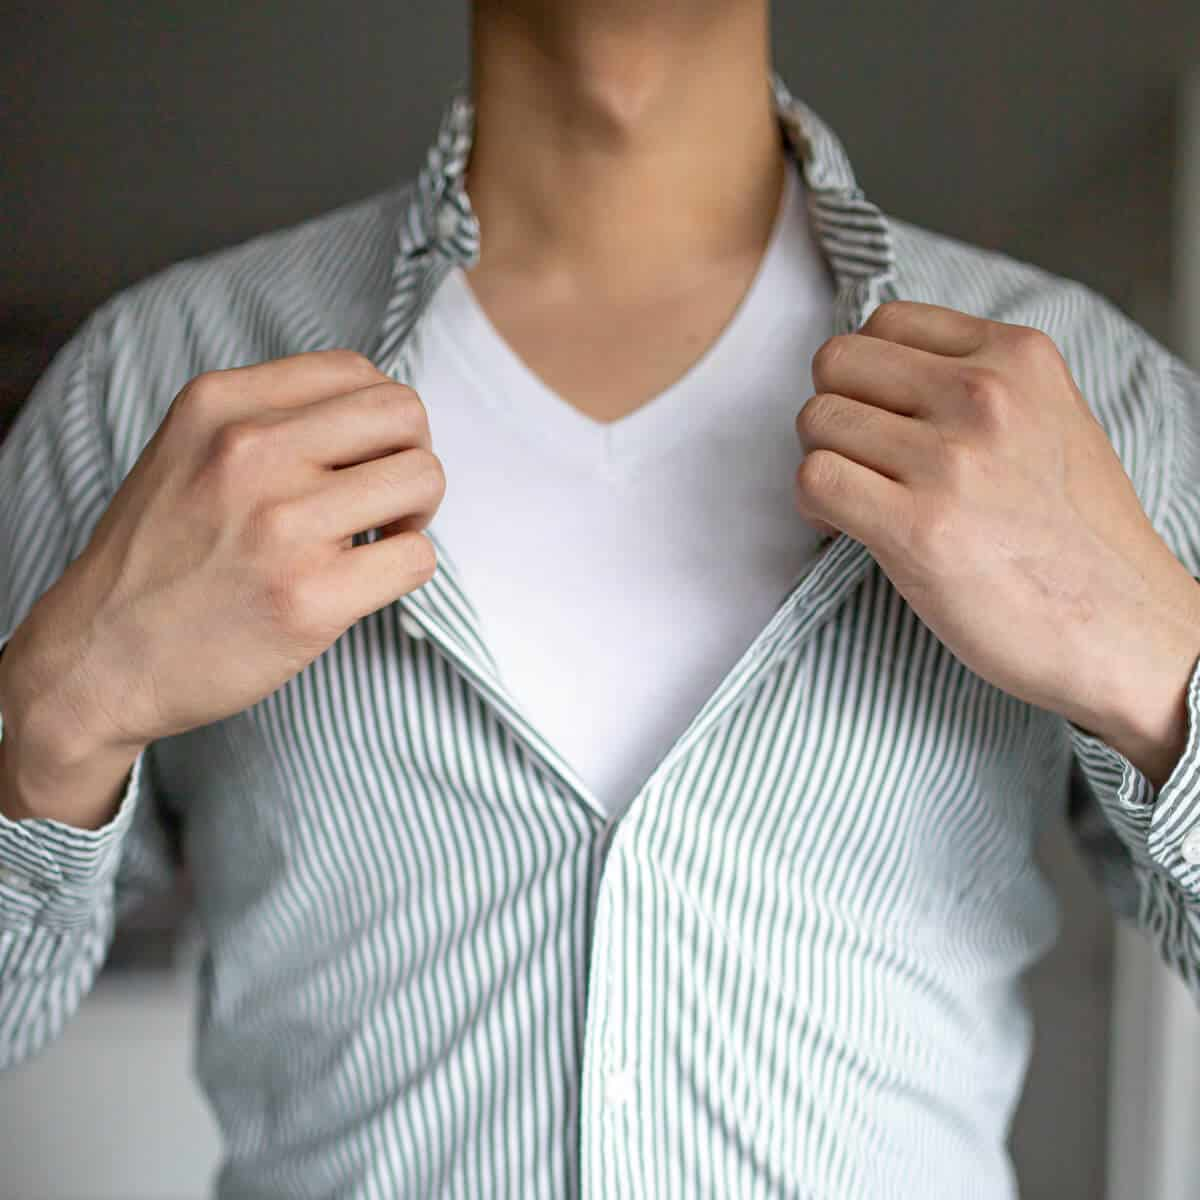 Person holding their shirt open to show their undershirt.